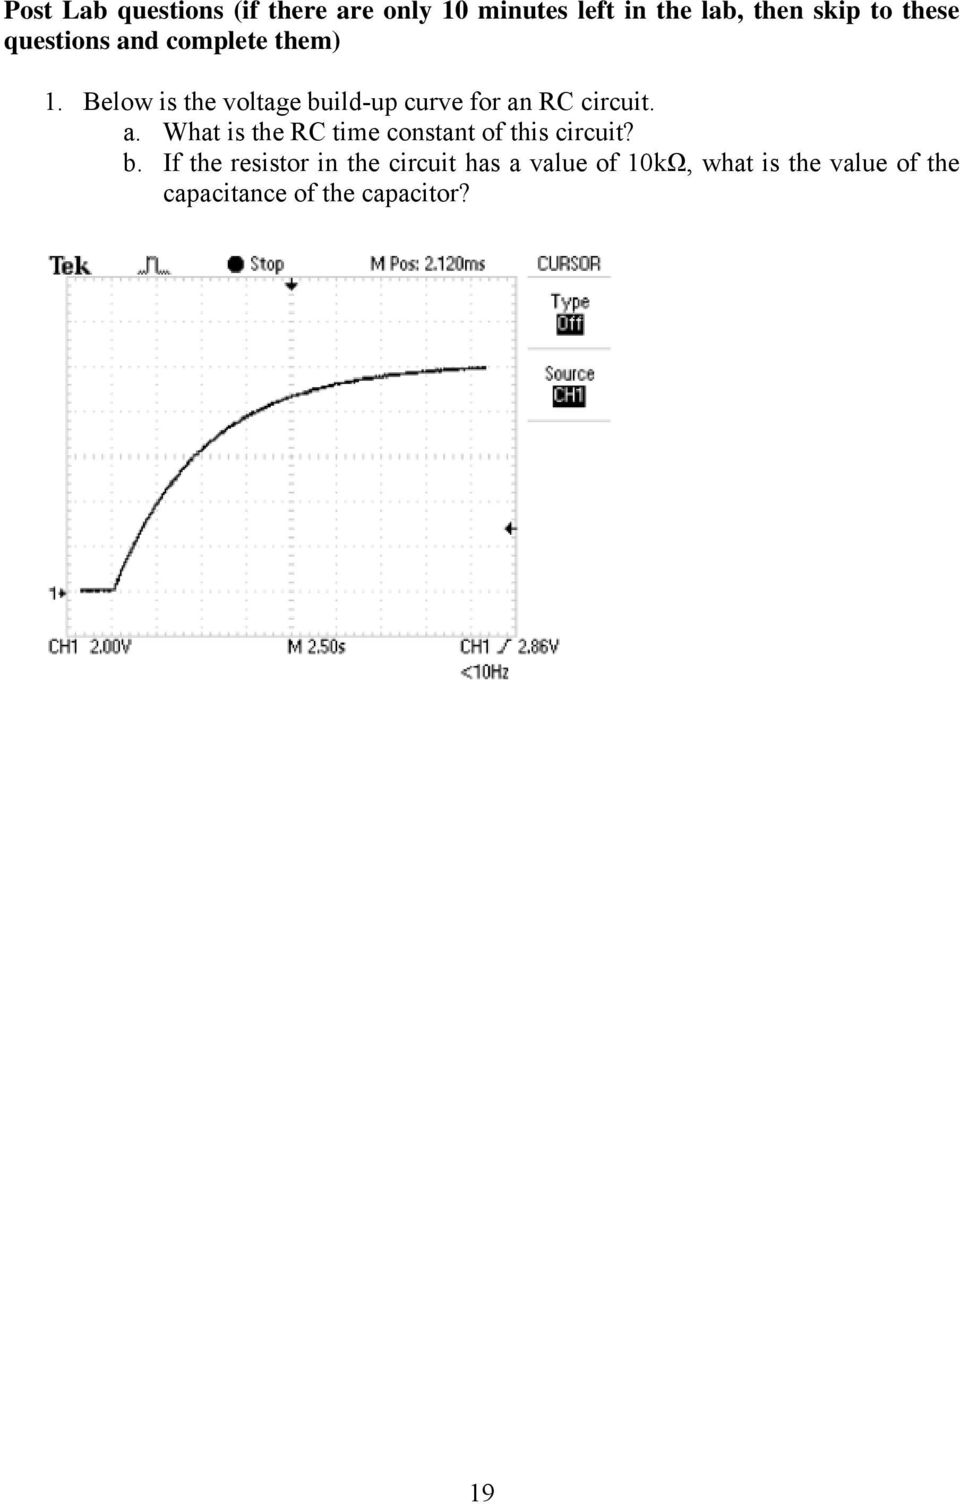 Below is the voltage build-up curve for an